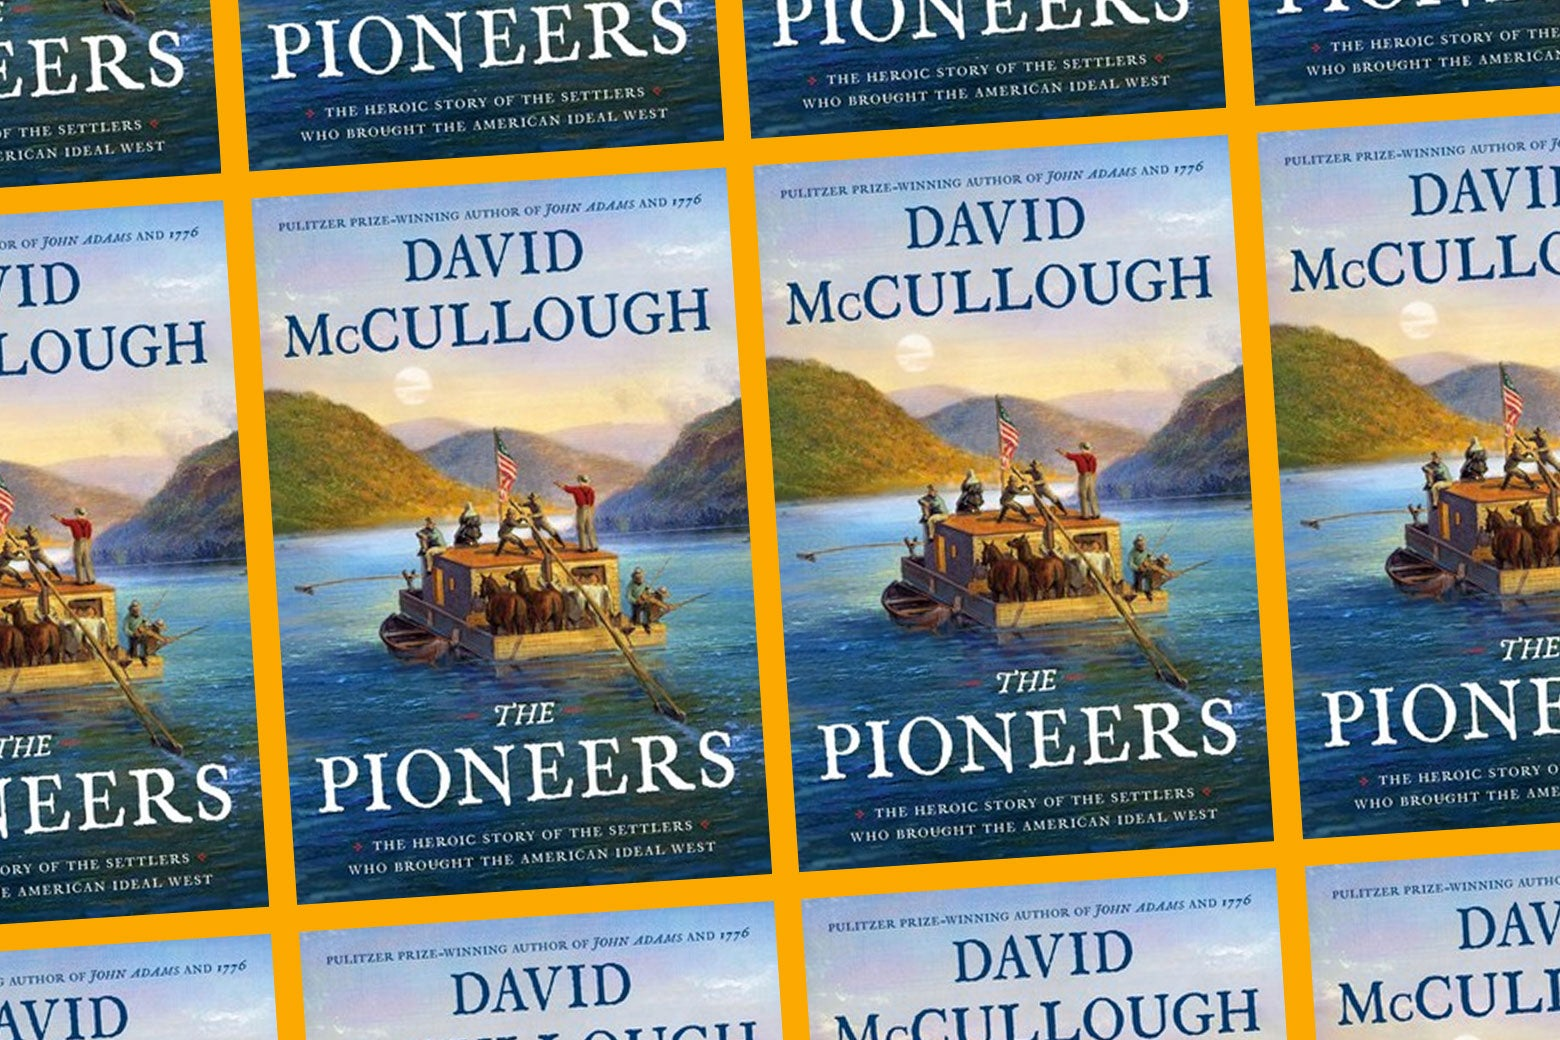 Photo illustration for The Pioneers' book cover.